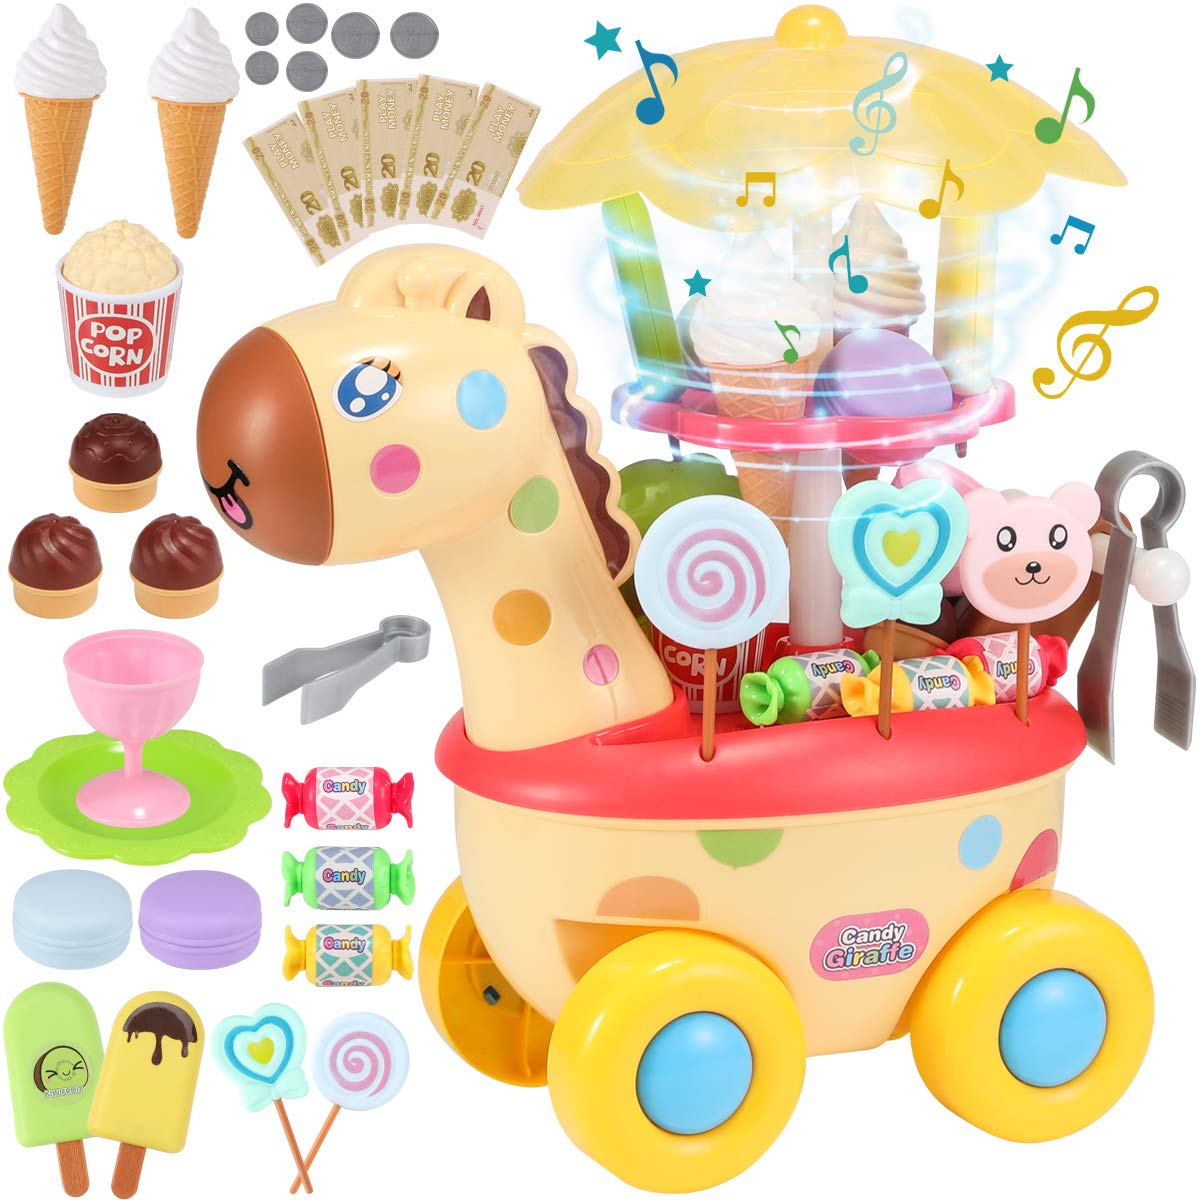 Geyiie Ice Cream Cart for Kids, 37 Piece Pretend Play Food Dessert Candy Trolley Set with Music and Lighting Toys for 4 5 6 7 Years Old Girls, Boys, Toddlers